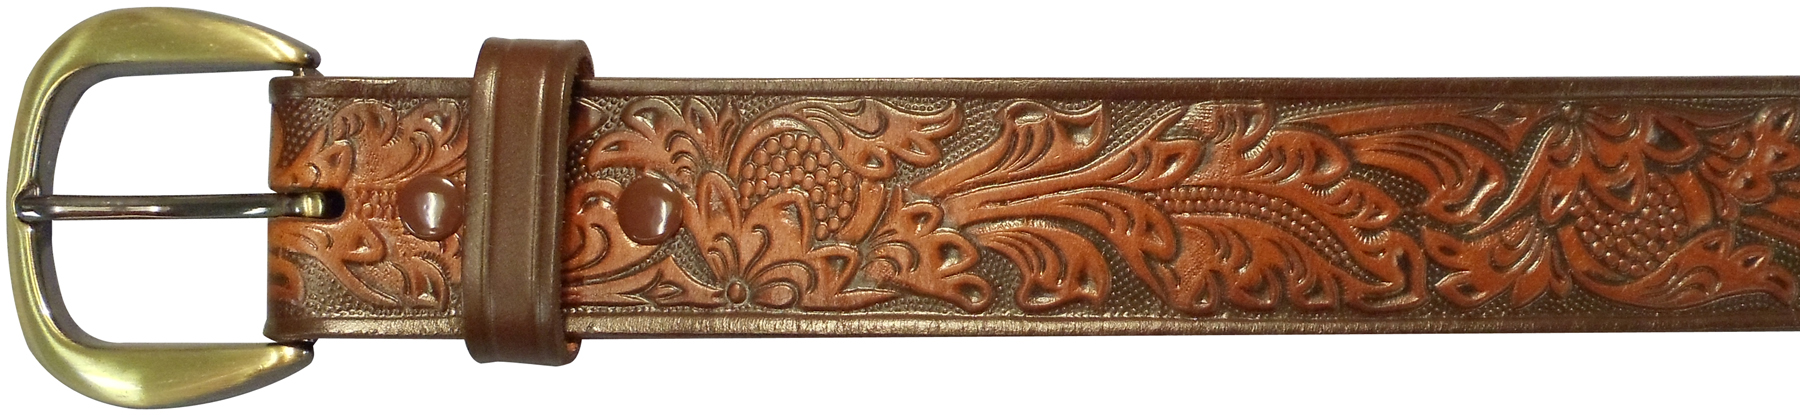 "10610110240 - 40"" Brown Leather Embossed Belt"